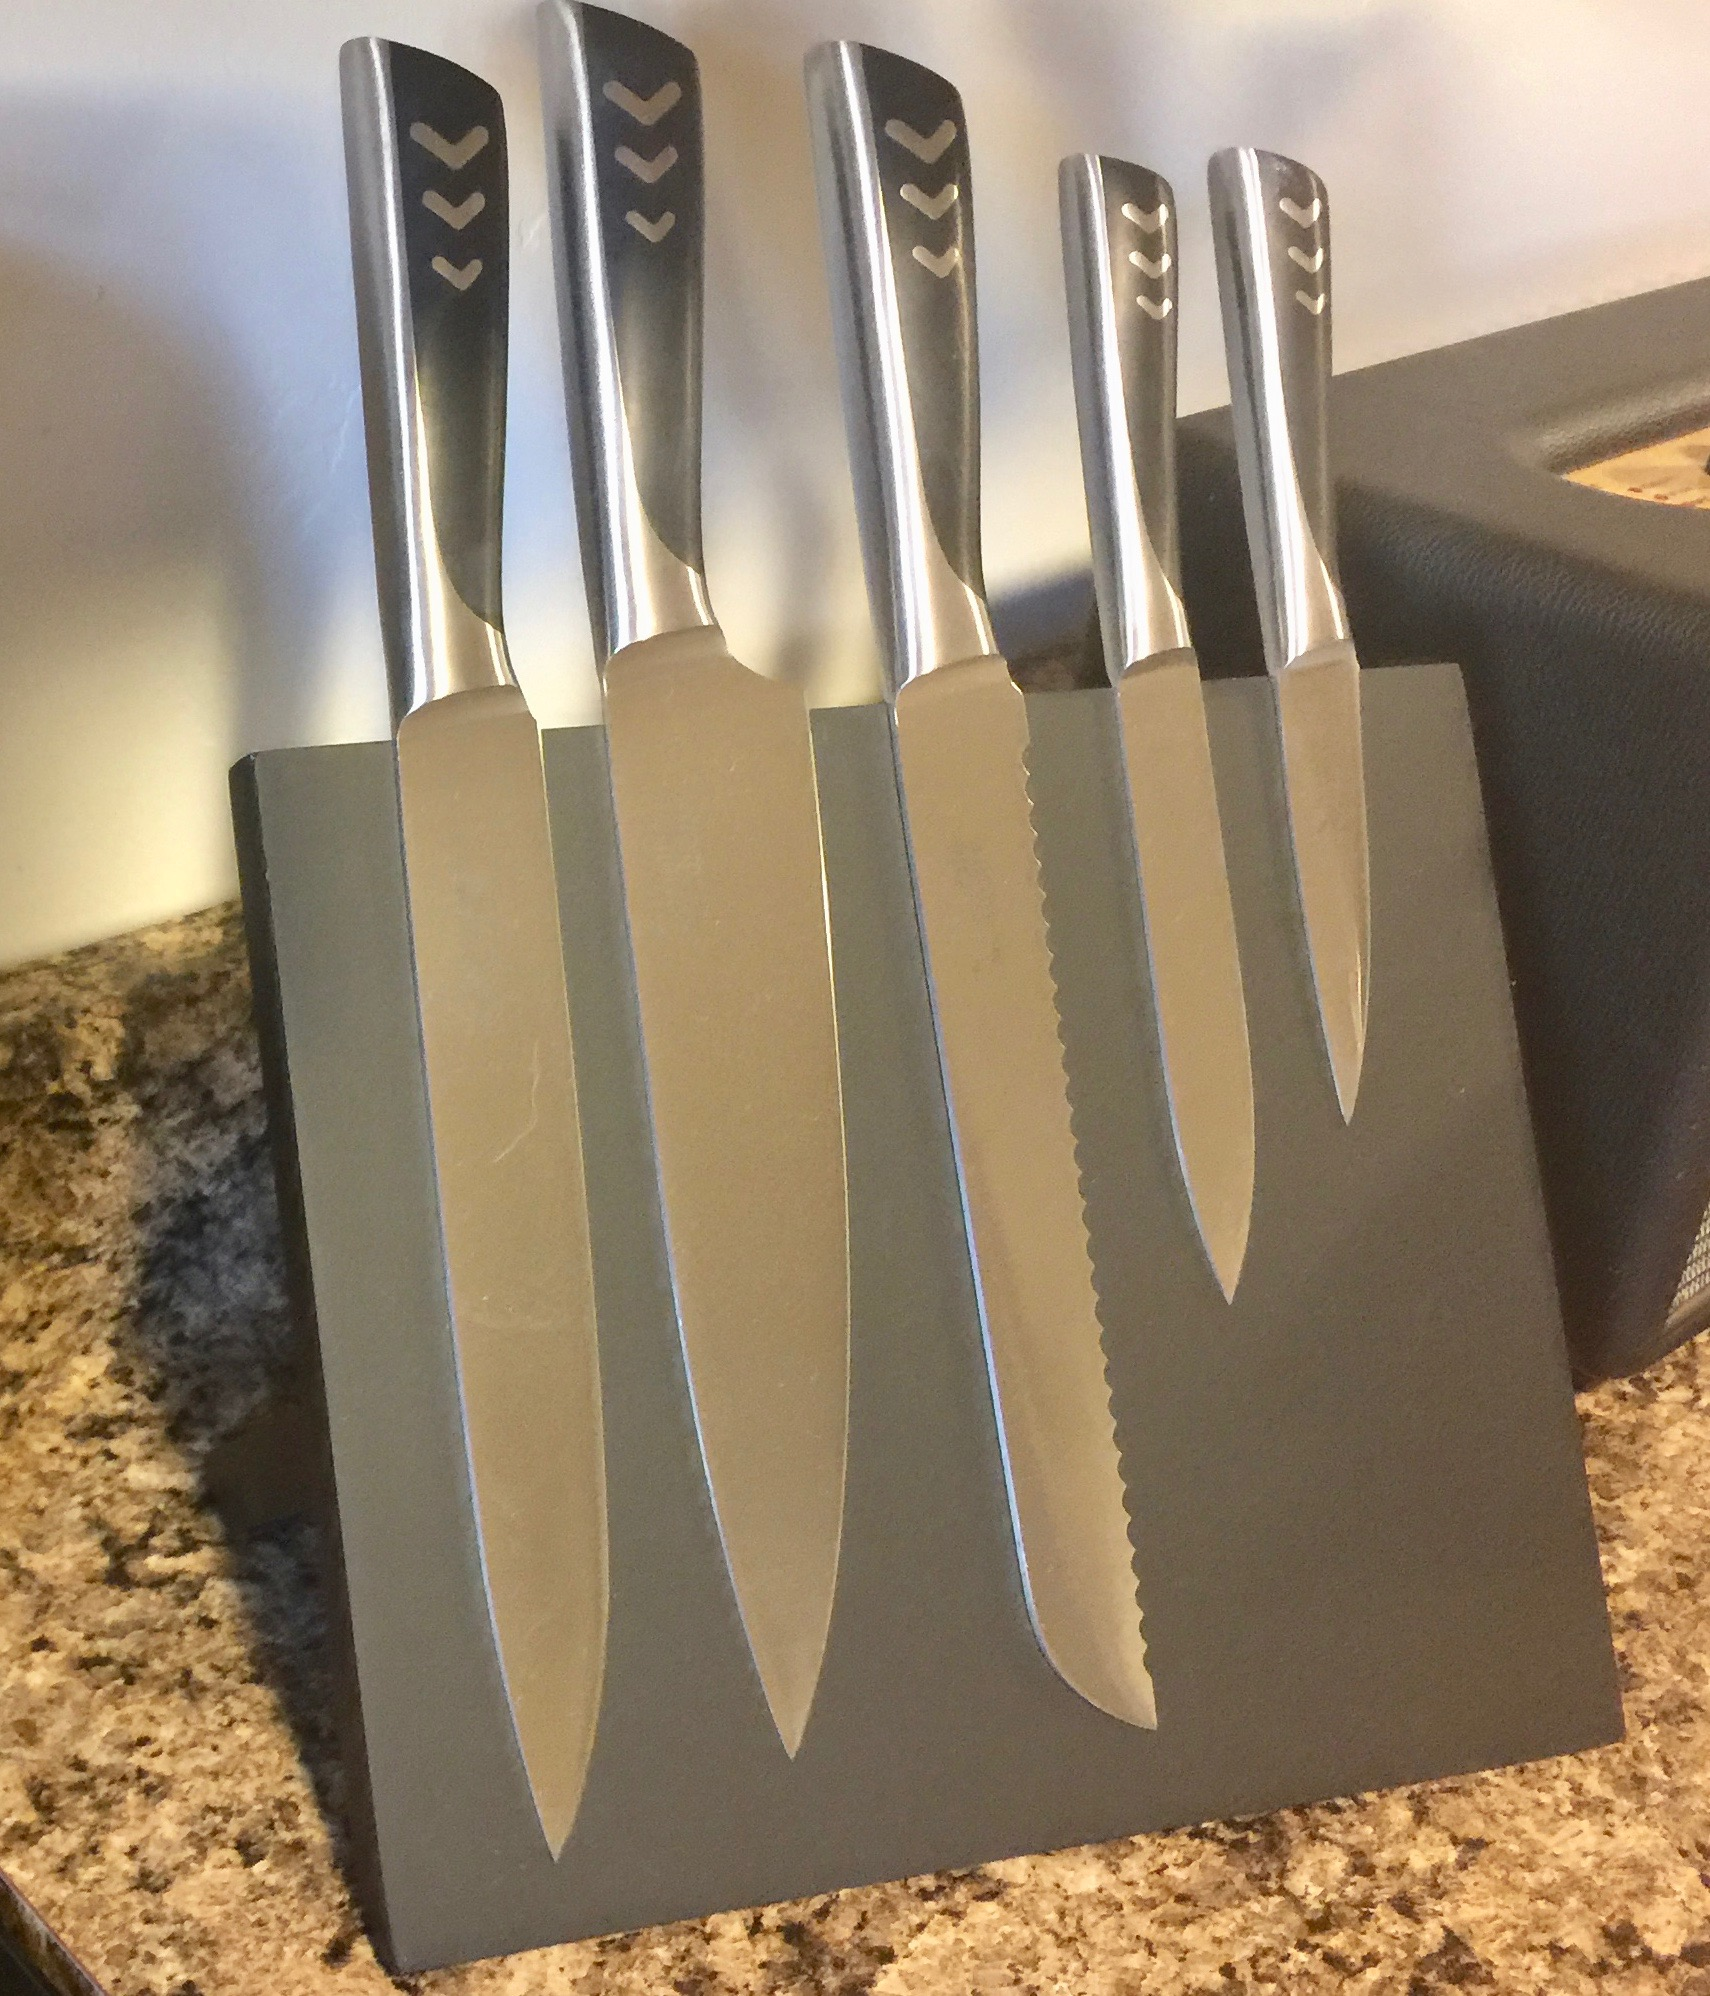 Standing Knife Flatware A Great Gift For The Cook Crucible Cookware 6 Piece